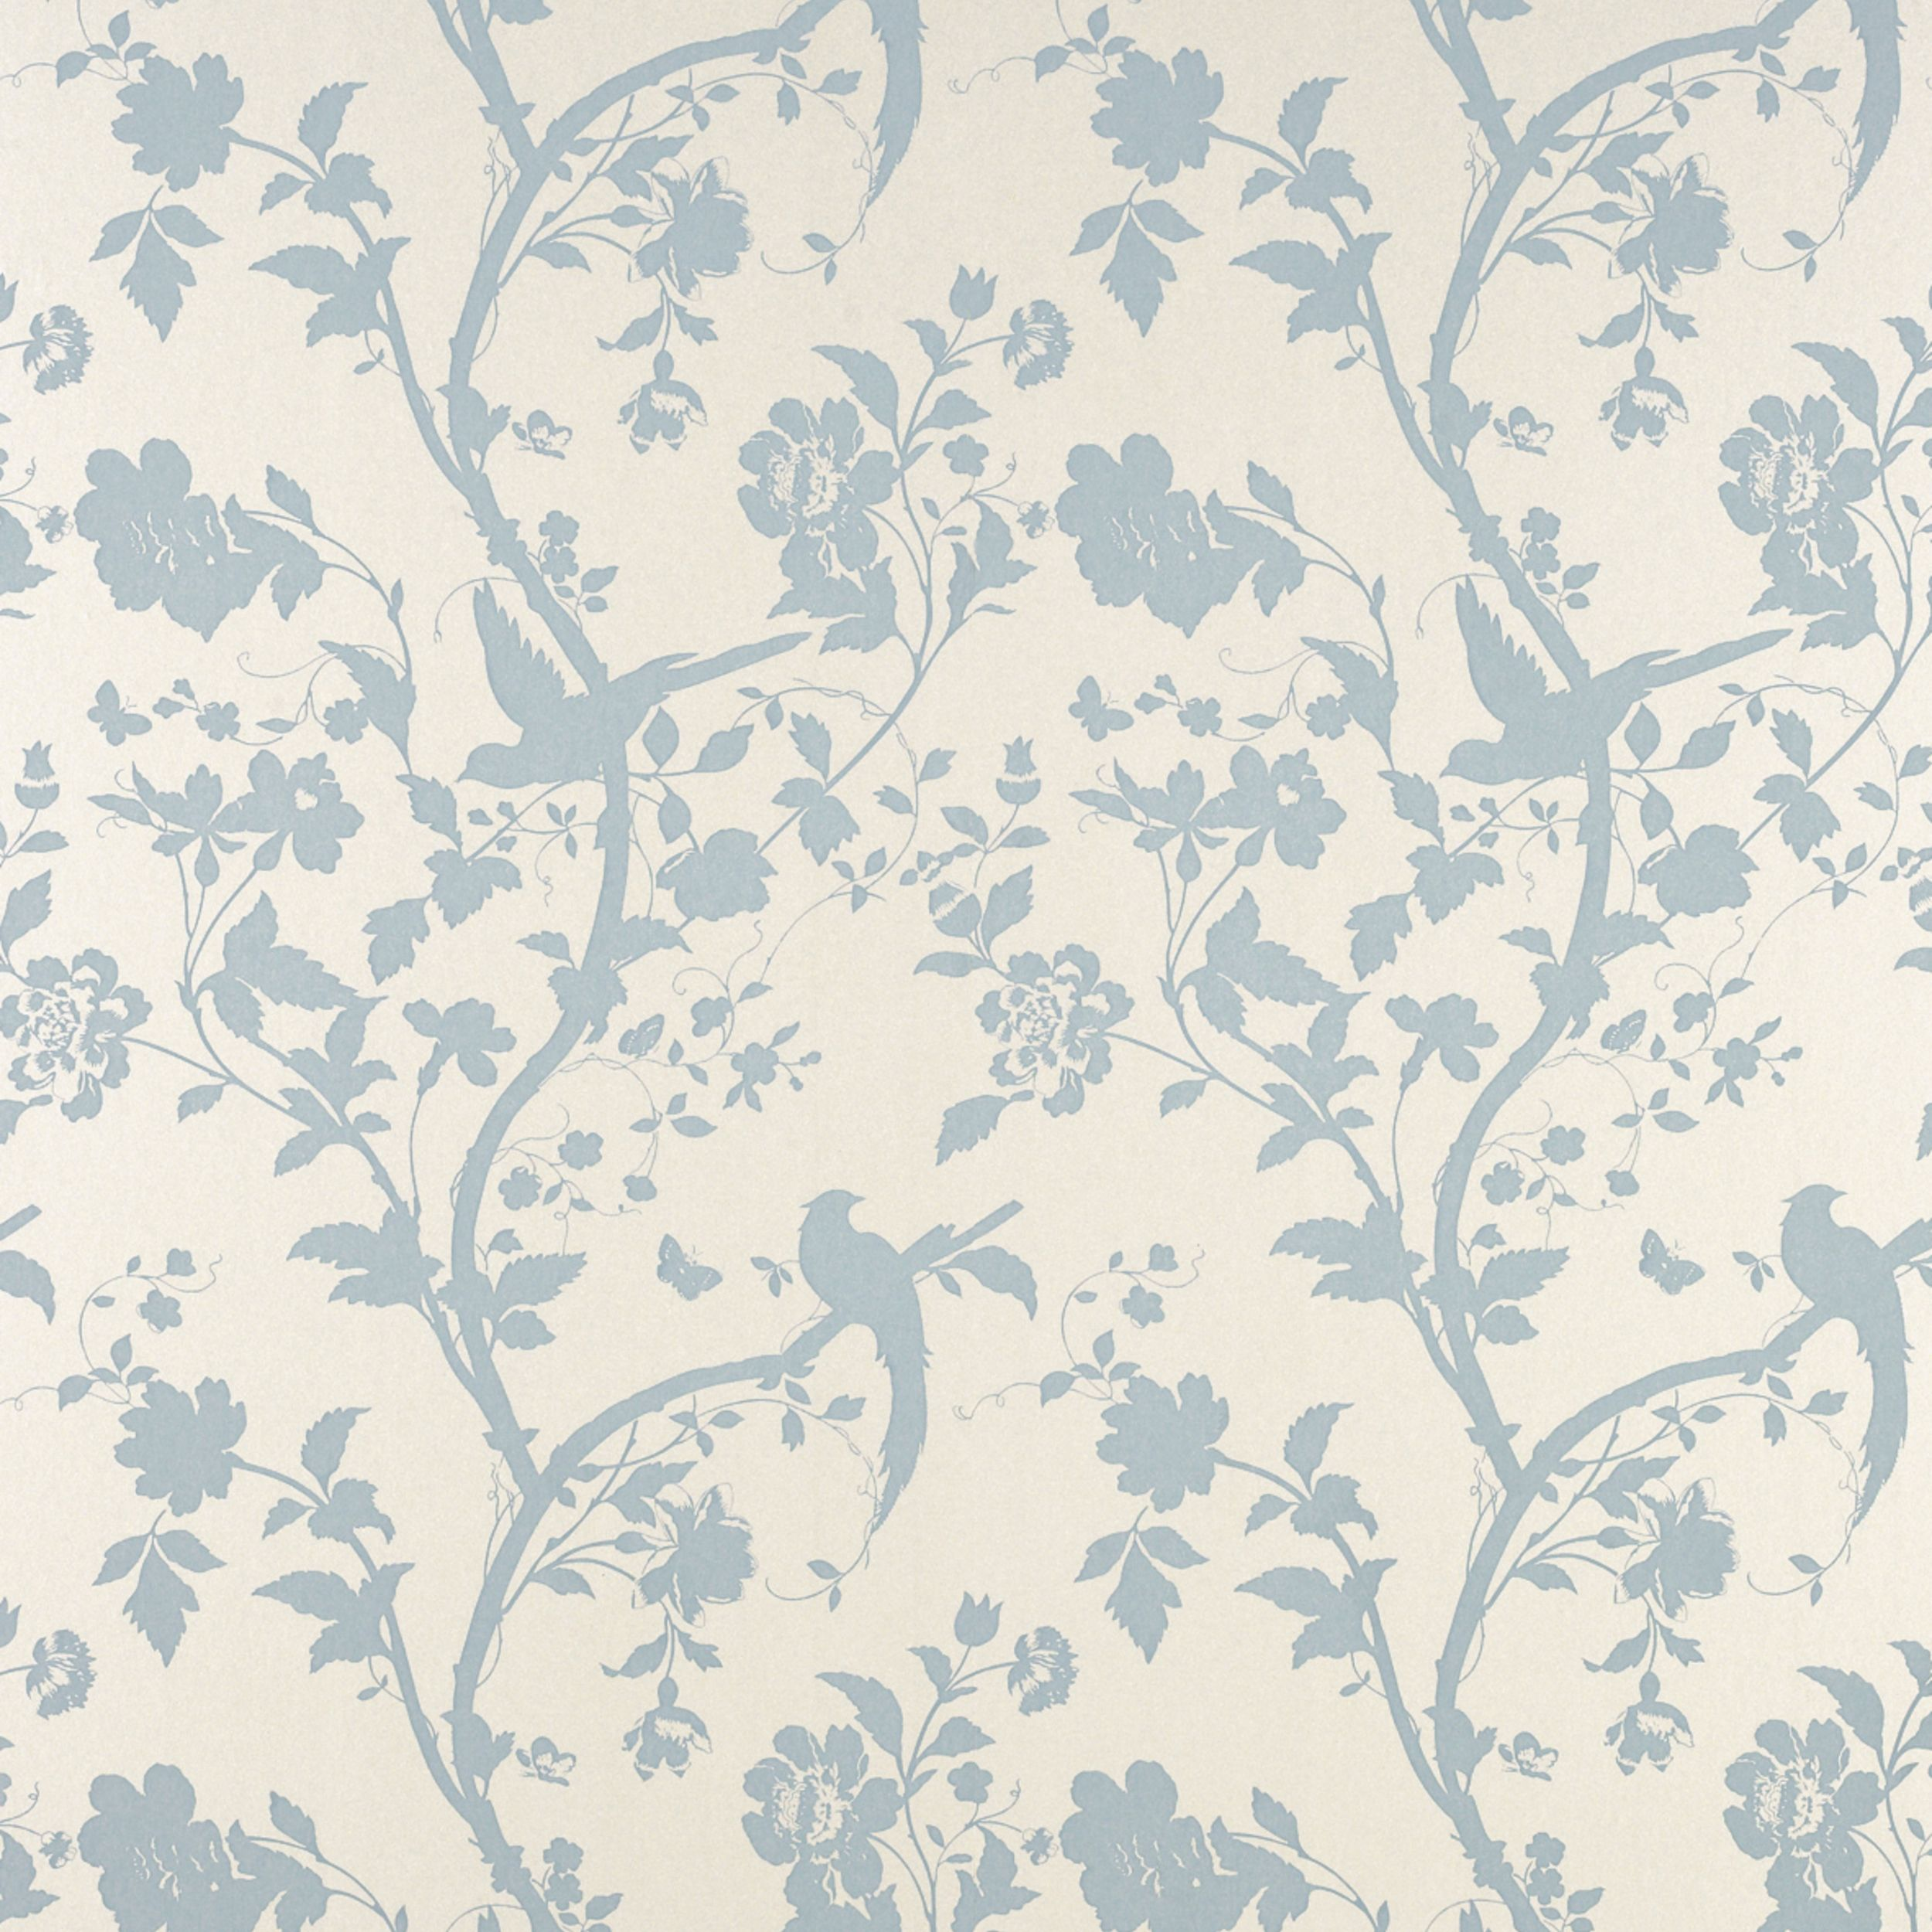 Bedroom Decorating Ideas Laura Ashley oriental garden duck egg floral wallpaper, again, laura ashley